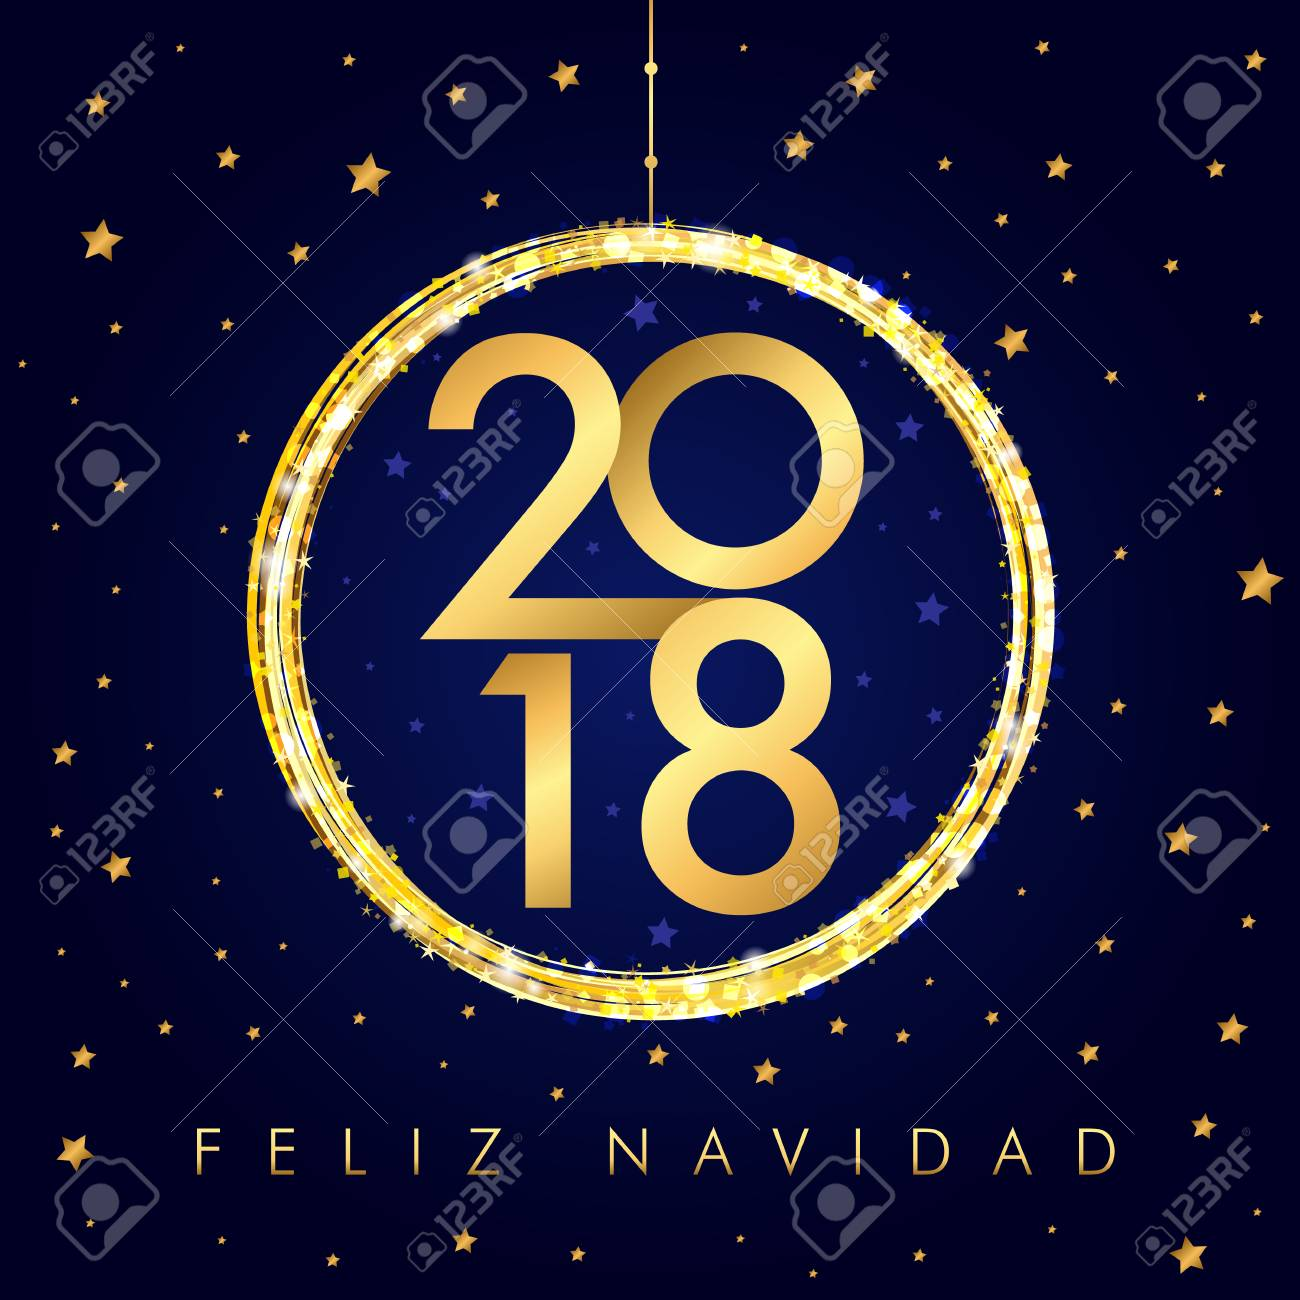 2018 feliz navidad happy new year golden ball card spanish merry christmas feliz navidad greeting